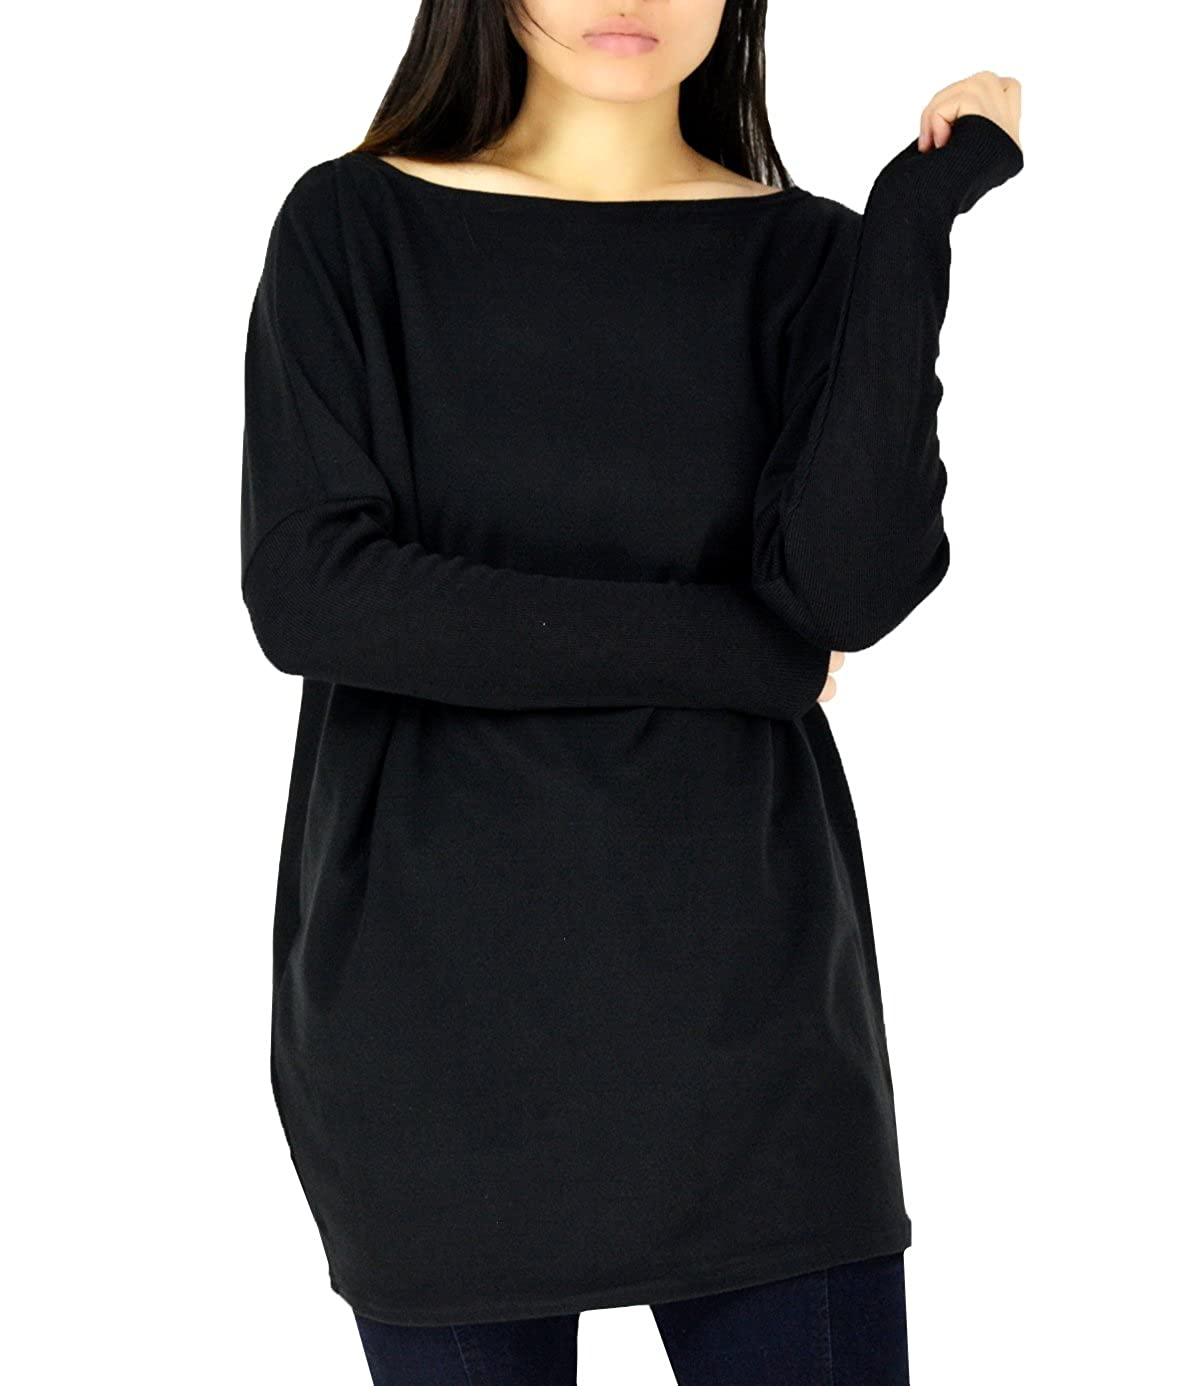 YSJERA Womens Boat Neck Pullover Dolman Sleeves Loose Solid Top Shirt Dresses